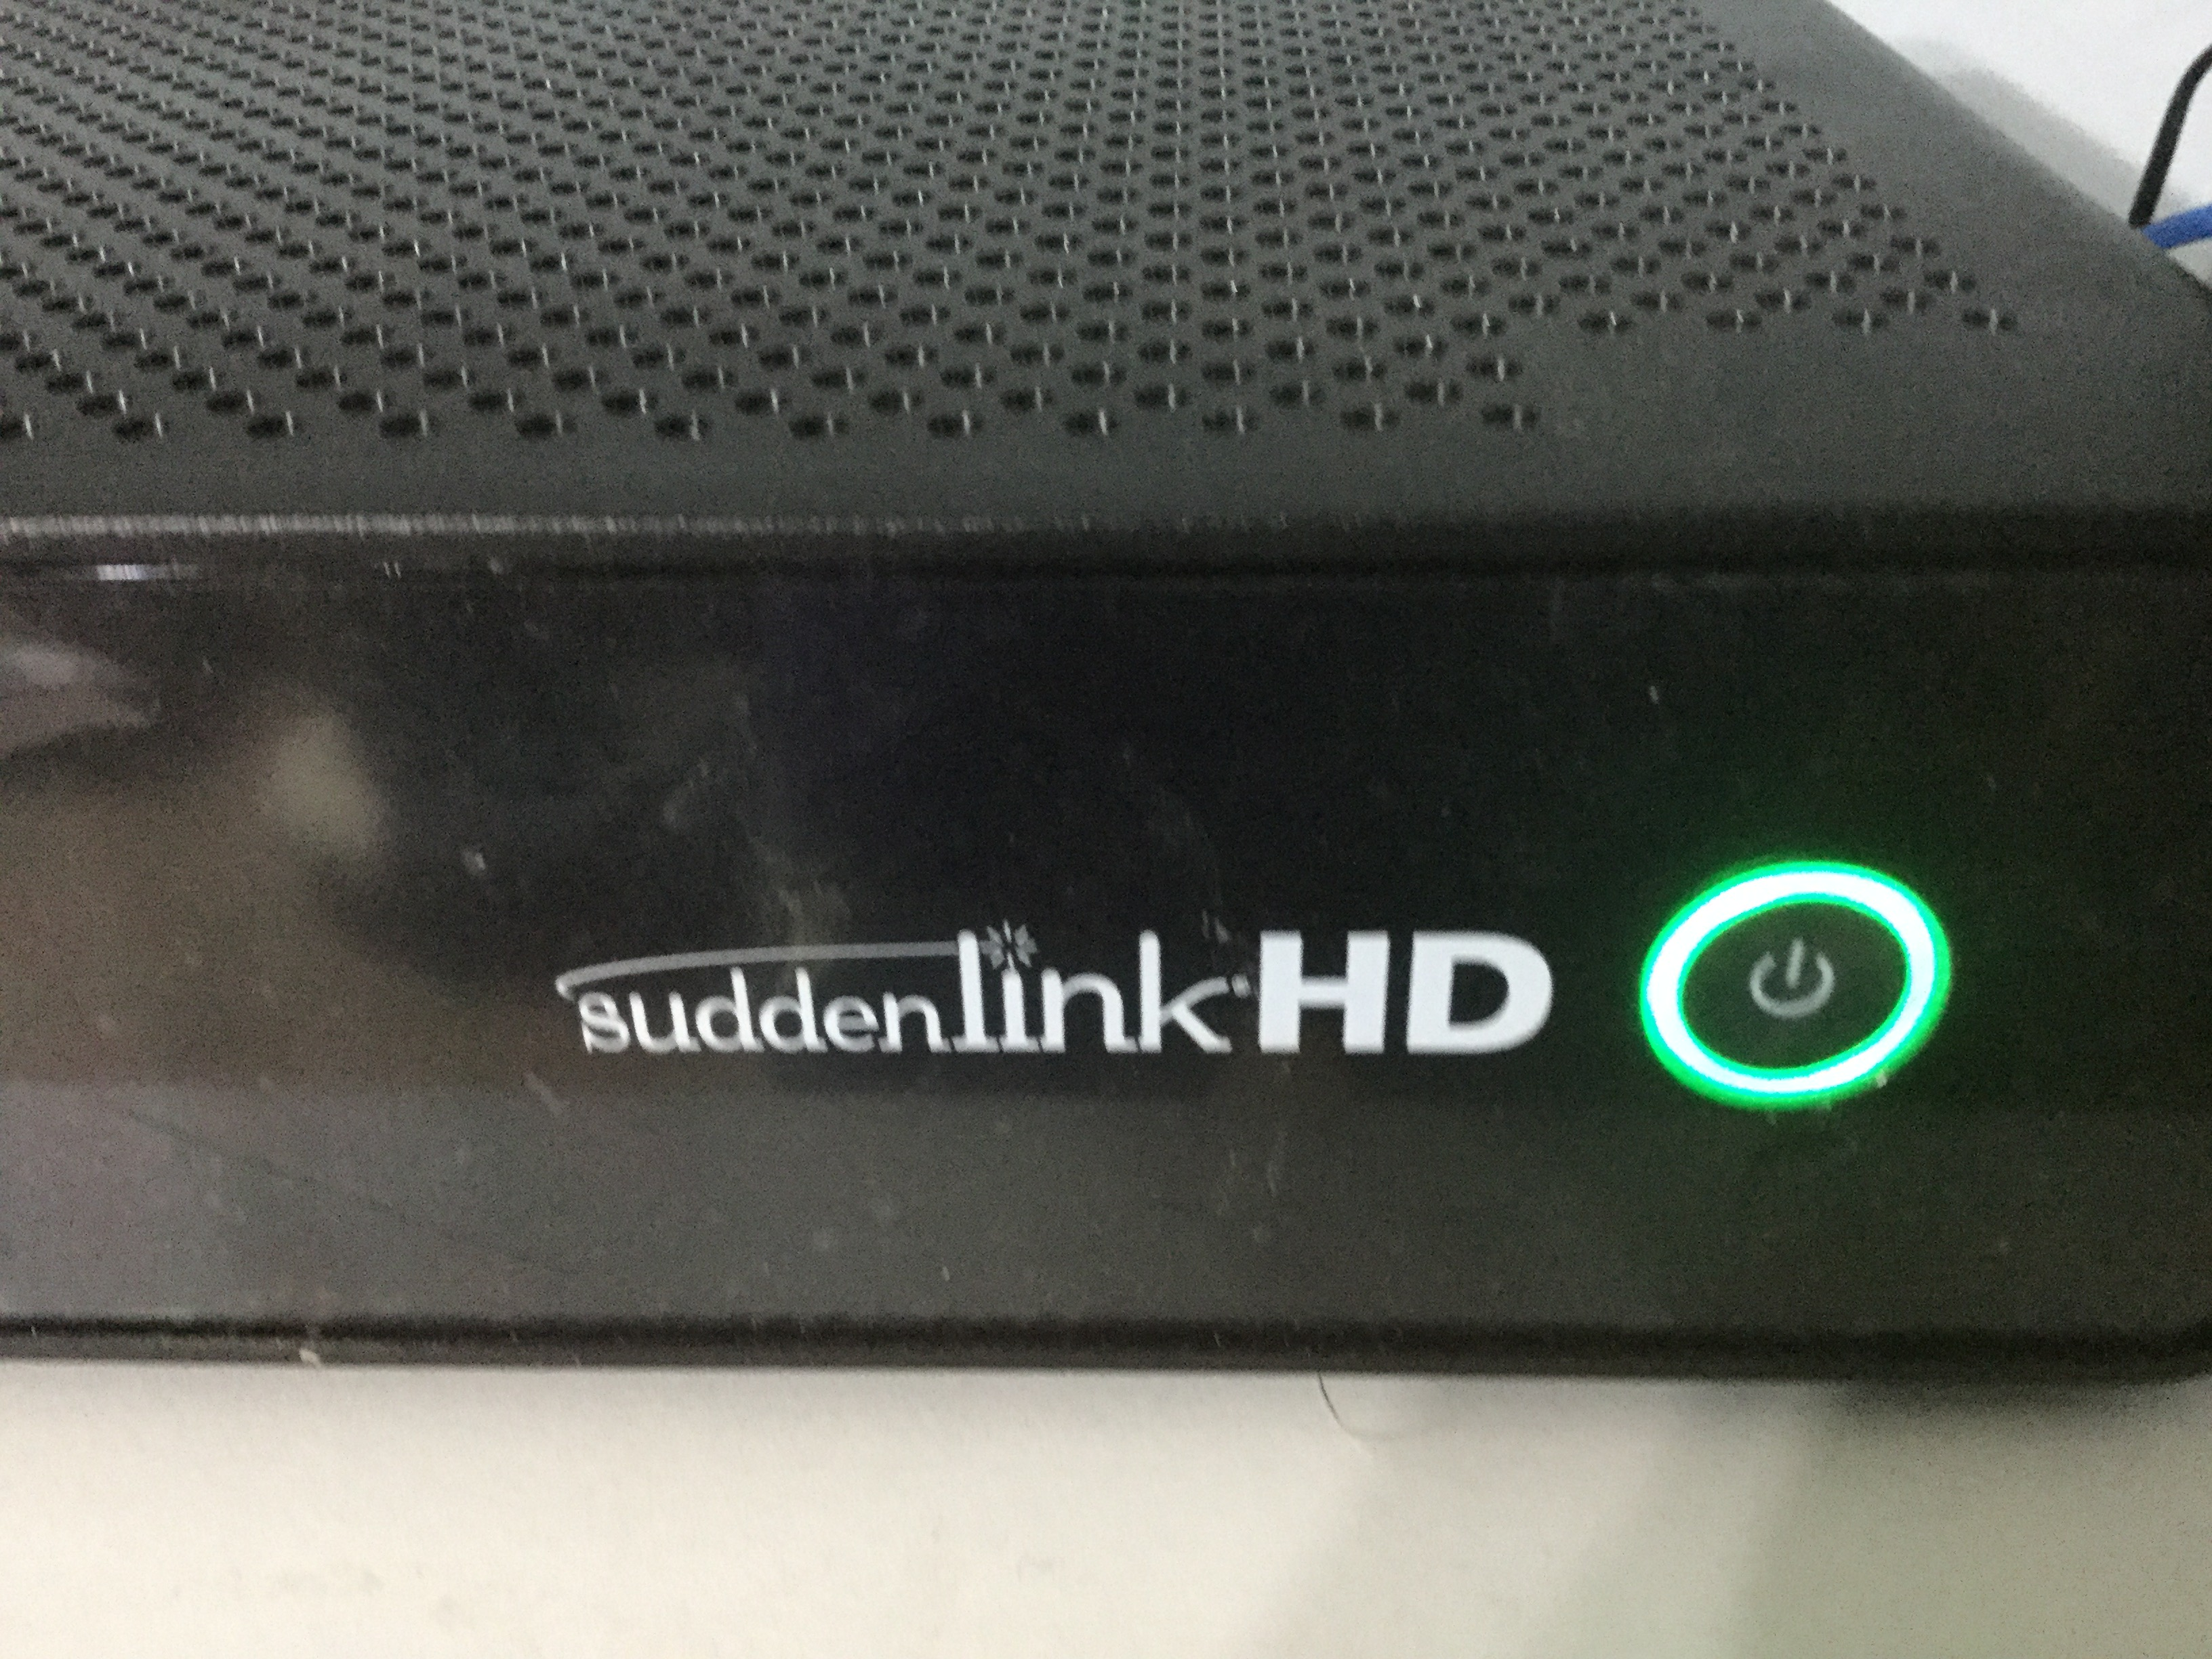 Suddenlink Wifi Router Image Of Router Imageto Co